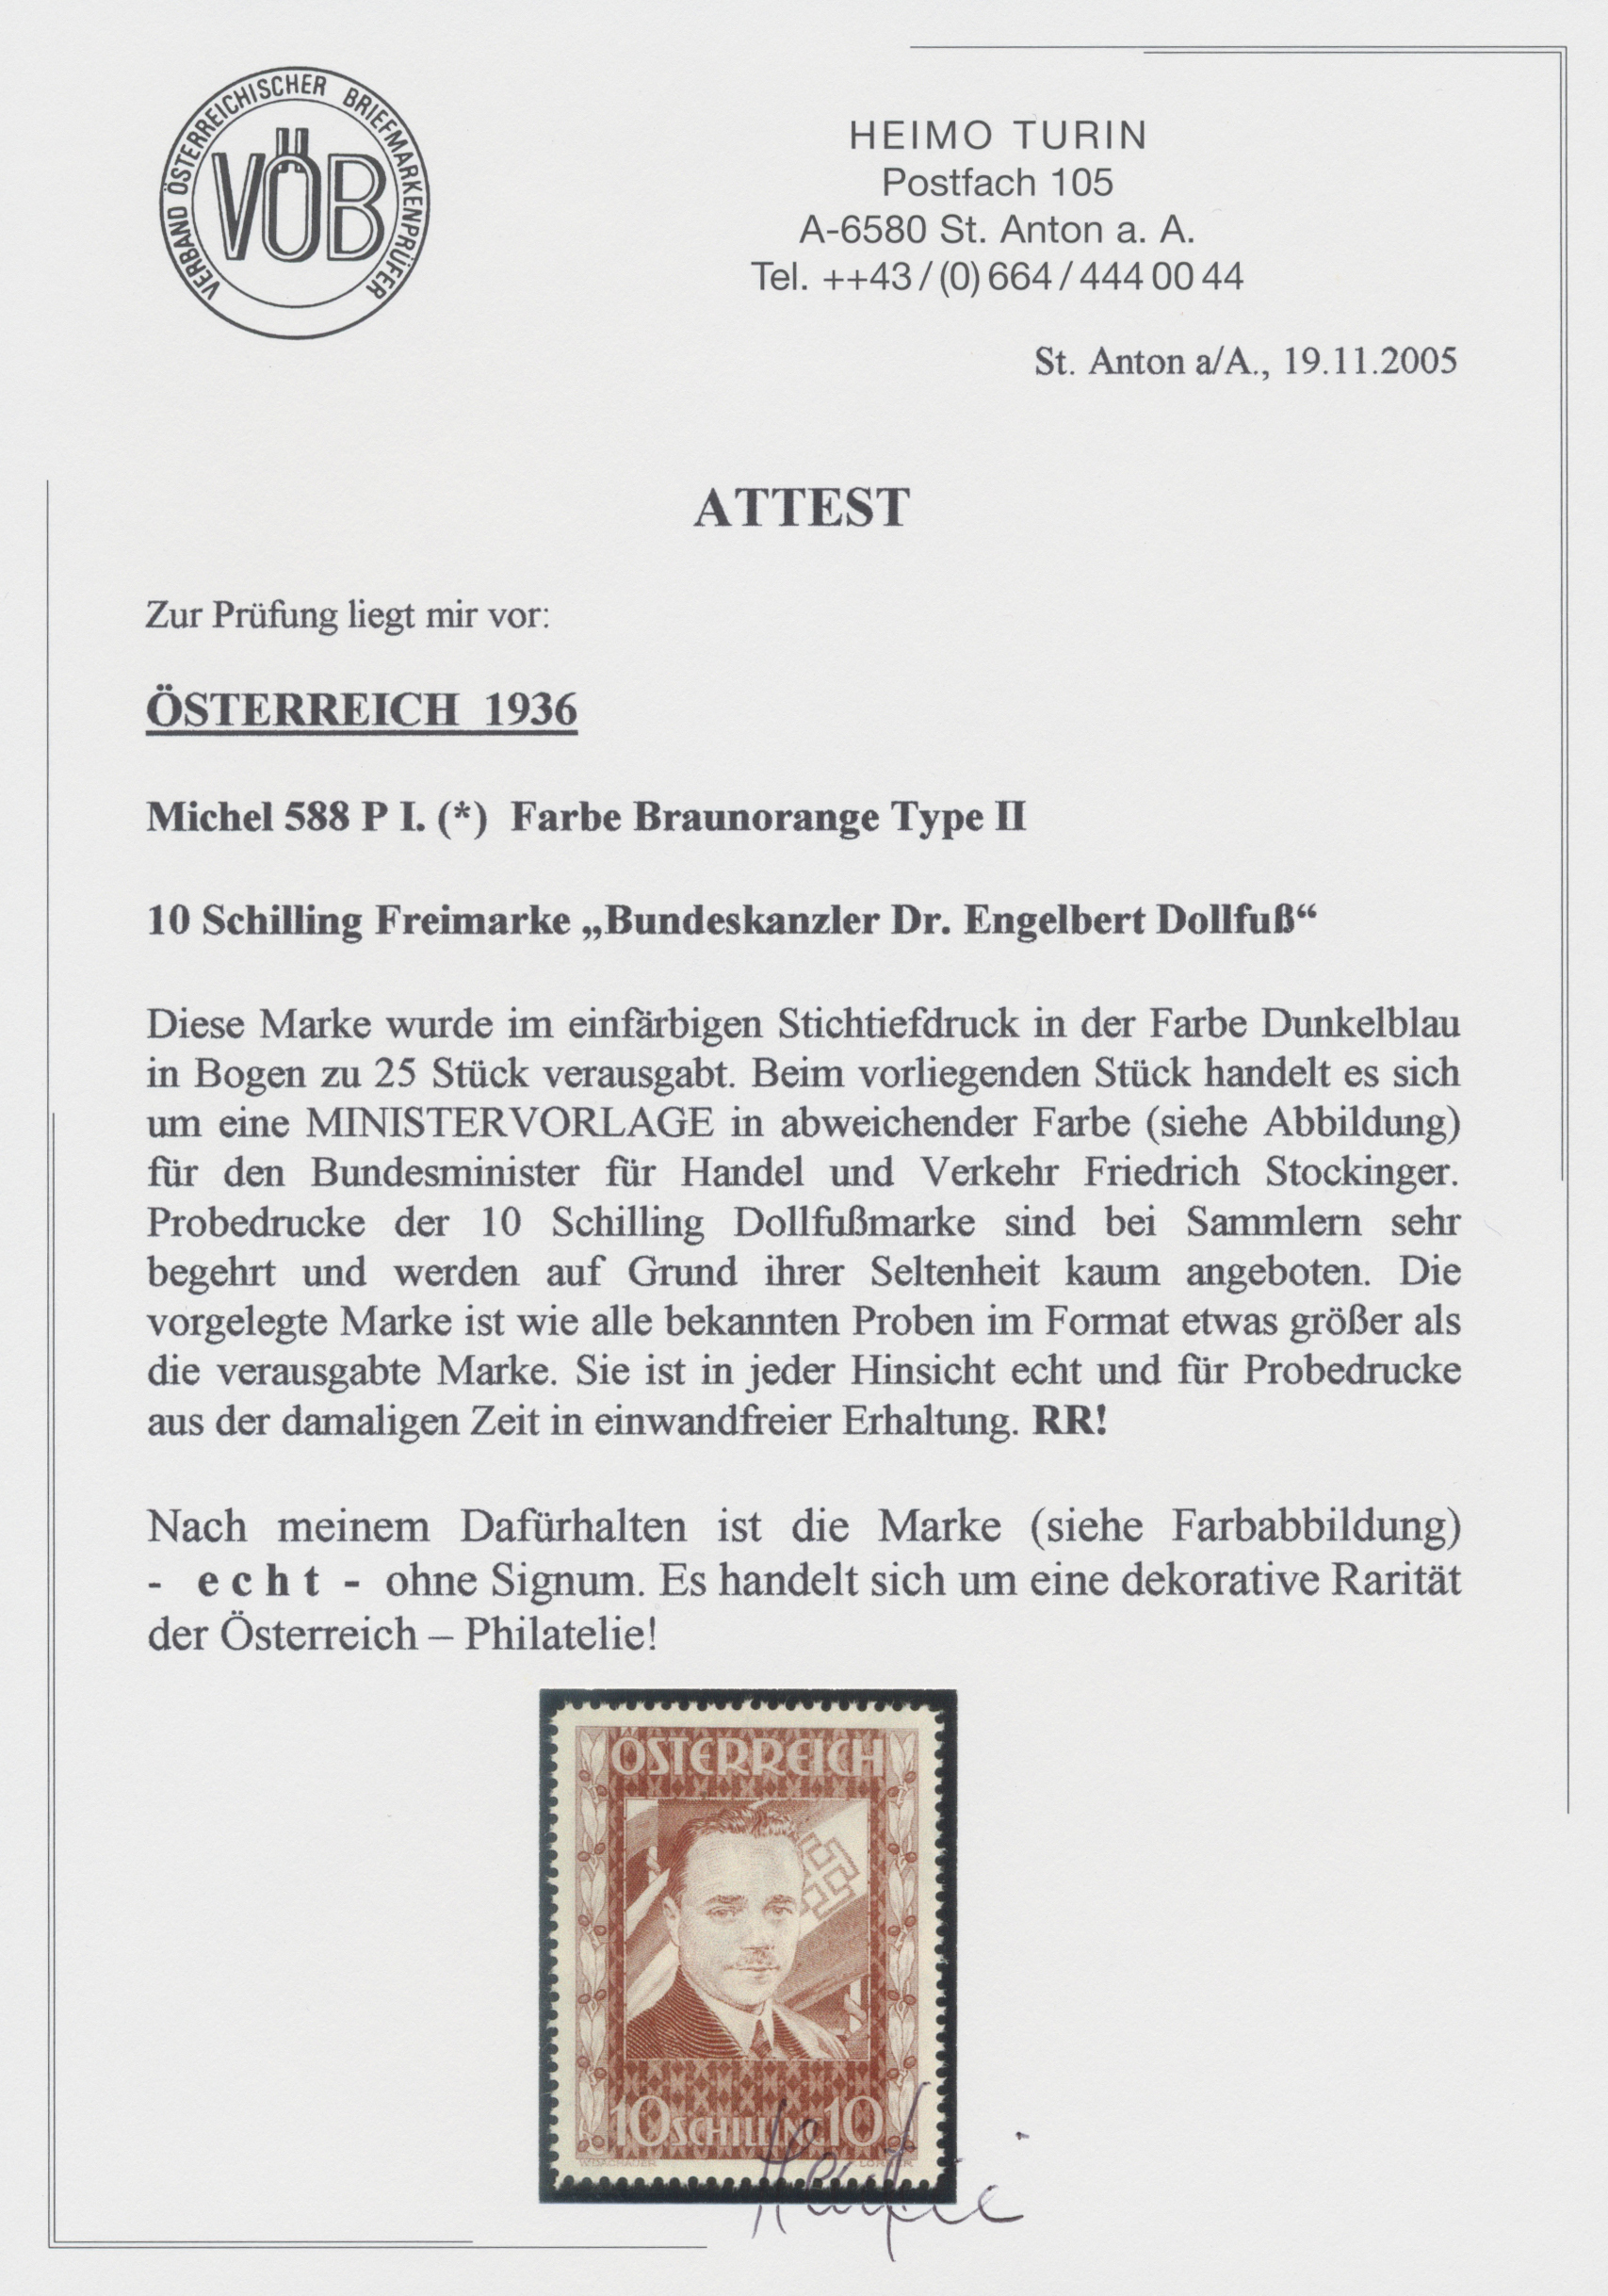 Lot 00023 - österreich  -  Auktionshaus Christoph Gärtner GmbH & Co. KG Intenational Rarities and contains lots from the collection of Peter Zgonc